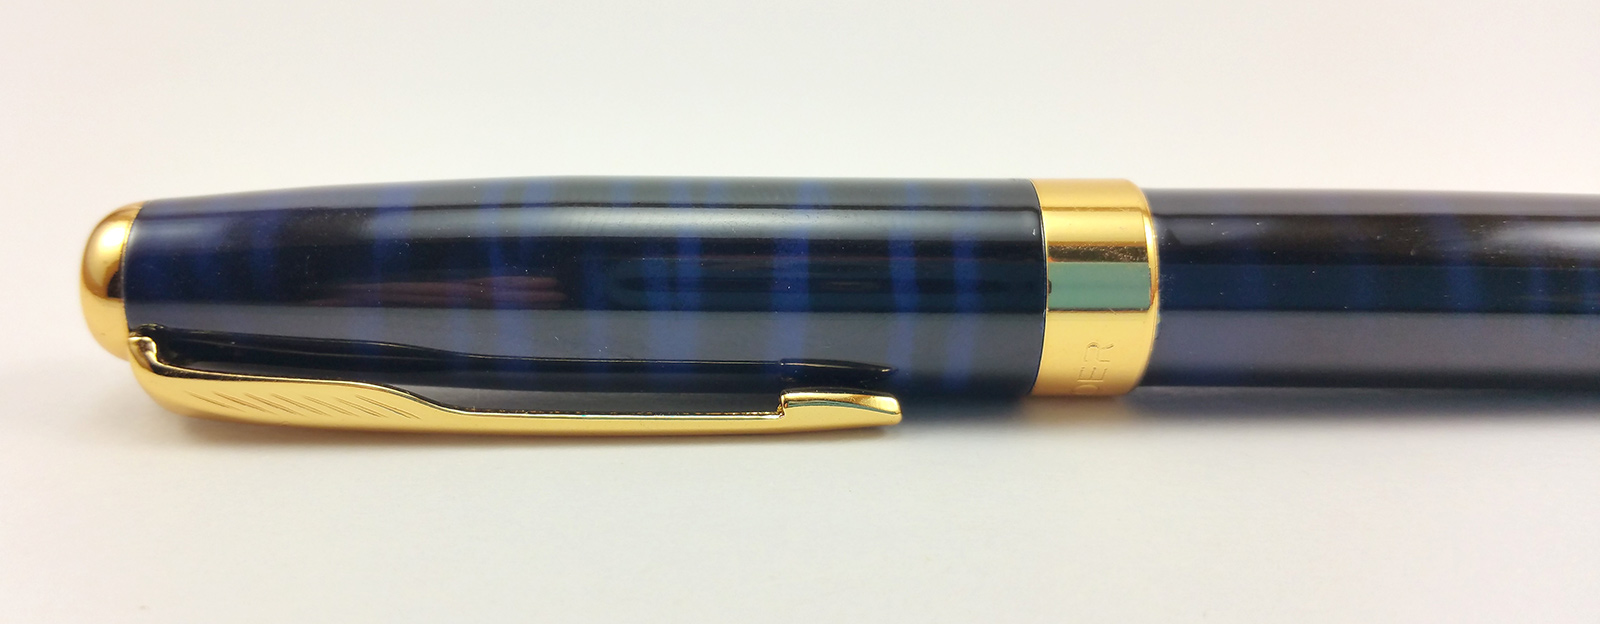 Baoer 388 Fountain Pen closeup of the cap to show the nice blue and black finish